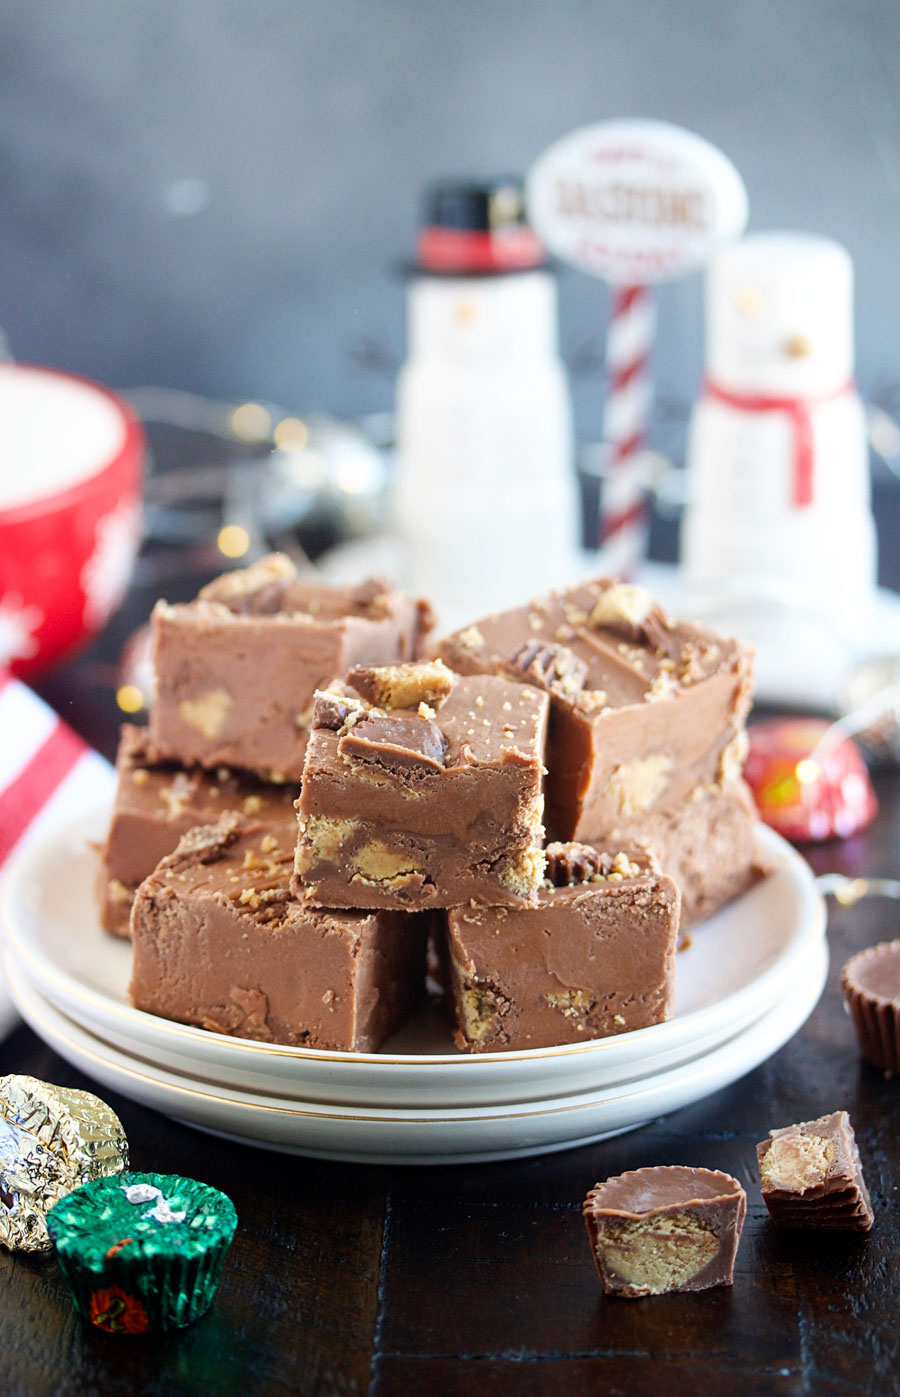 A plate of Reese's peanut butter cup fudge